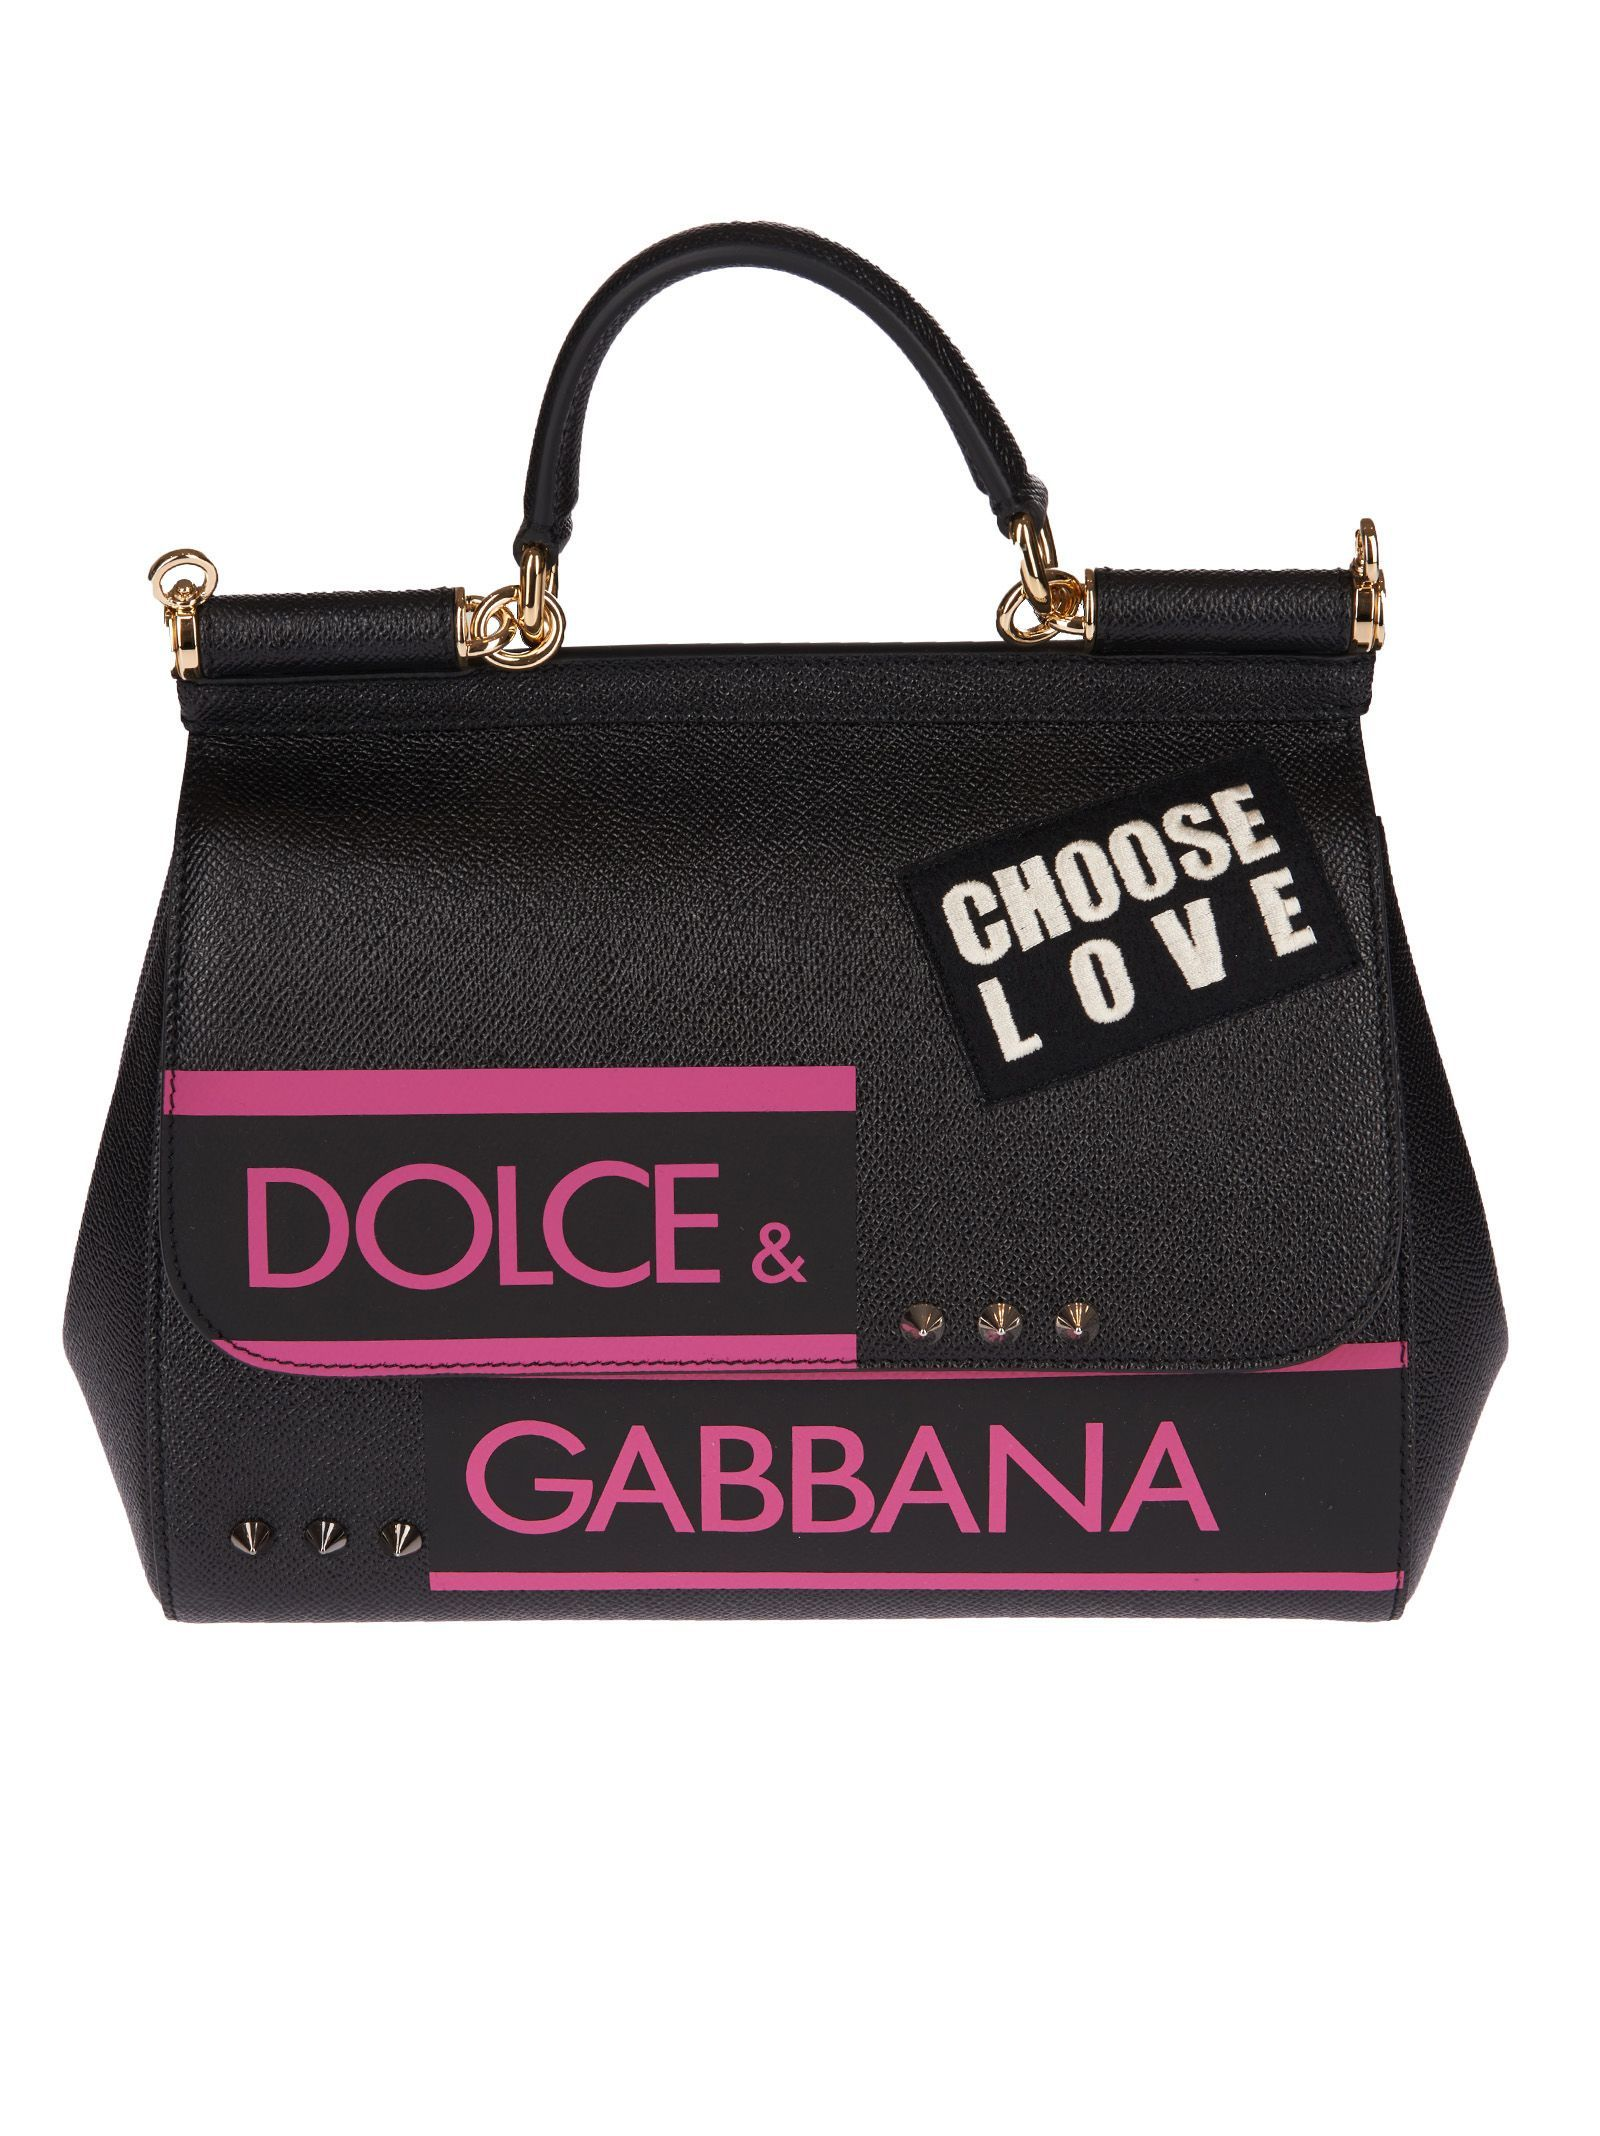 827a8db64102 DOLCE   GABBANA SICILY CHOOSE LOVE TOTE.  dolcegabbana  bags  shoulder bags   hand bags  polyester  leather  tote